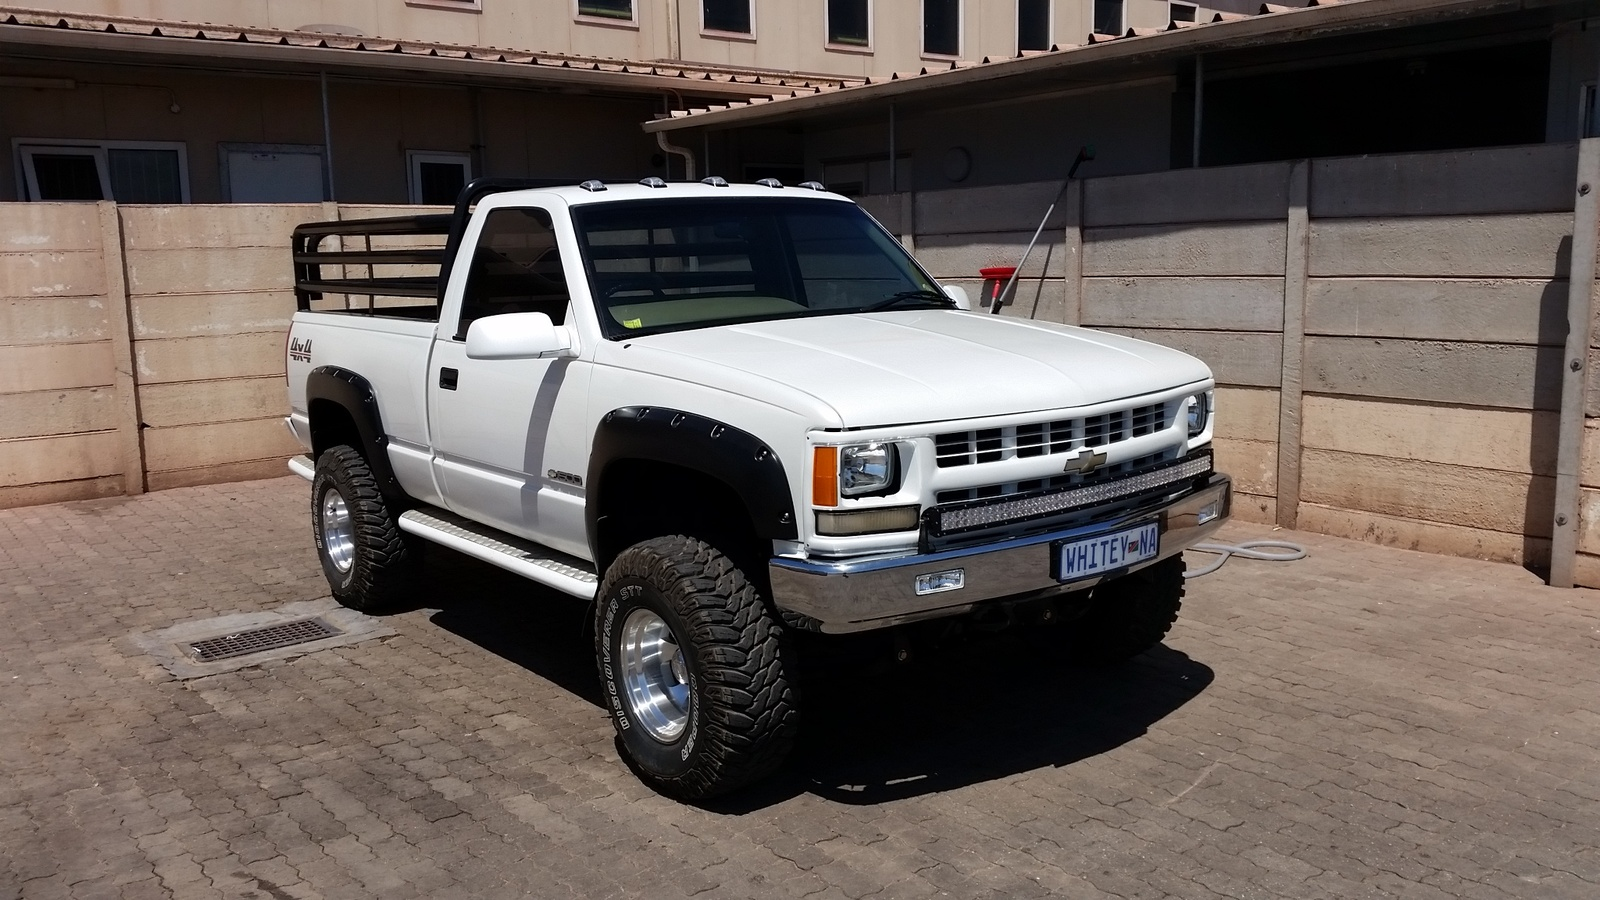 All Chevy 98 chevrolet 1500 : Chevrolet C/K 1500 Questions - Misfire on '98 K1500 - CarGurus